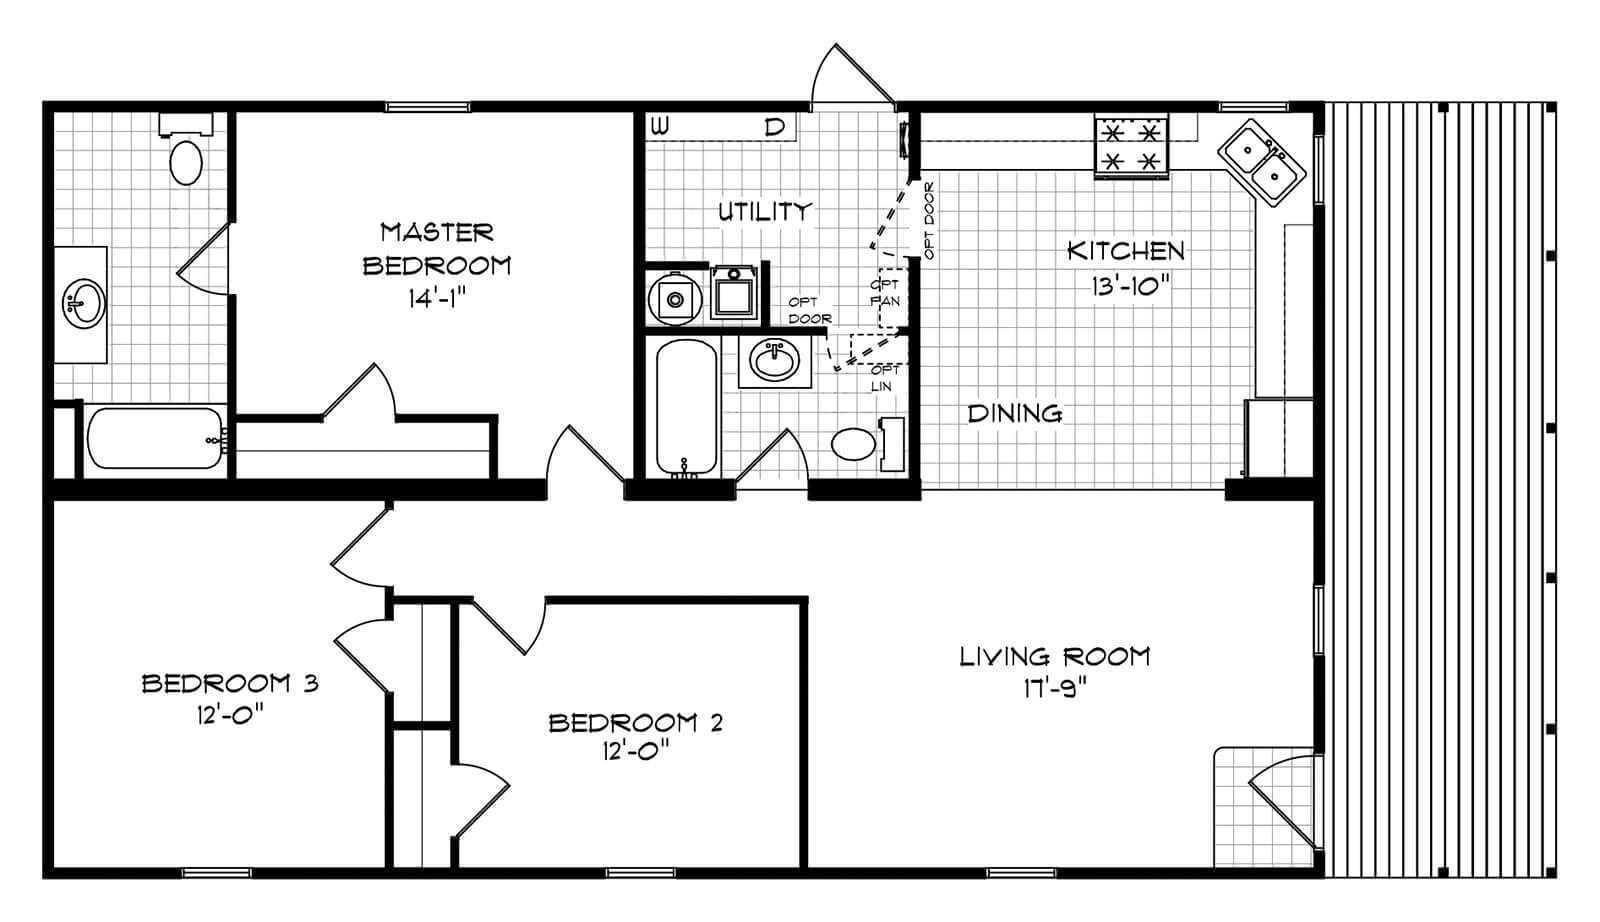 GS Courtyard Homes - Completed Projects - The Michigan MHE Floor Plan